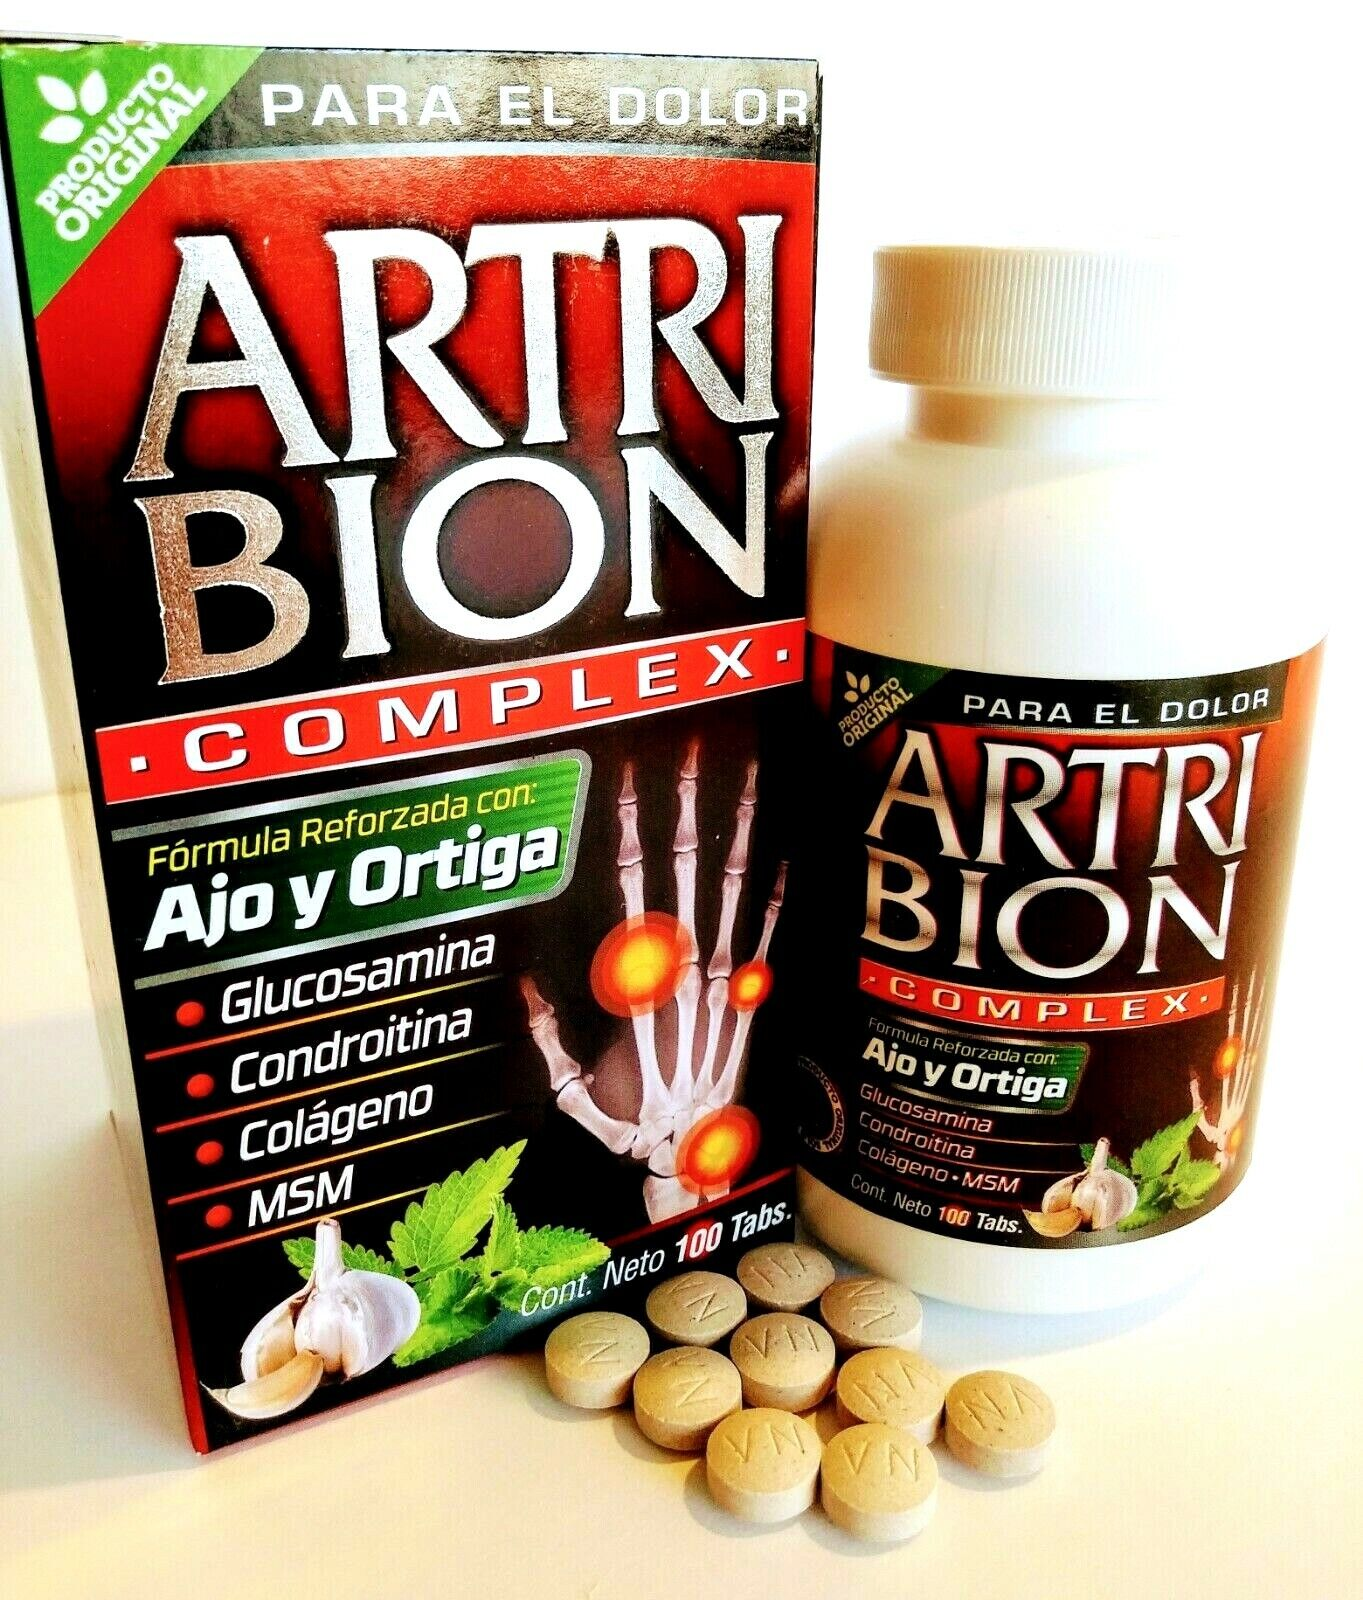 Artribion Complex Vida Natural Original 100 TABS.